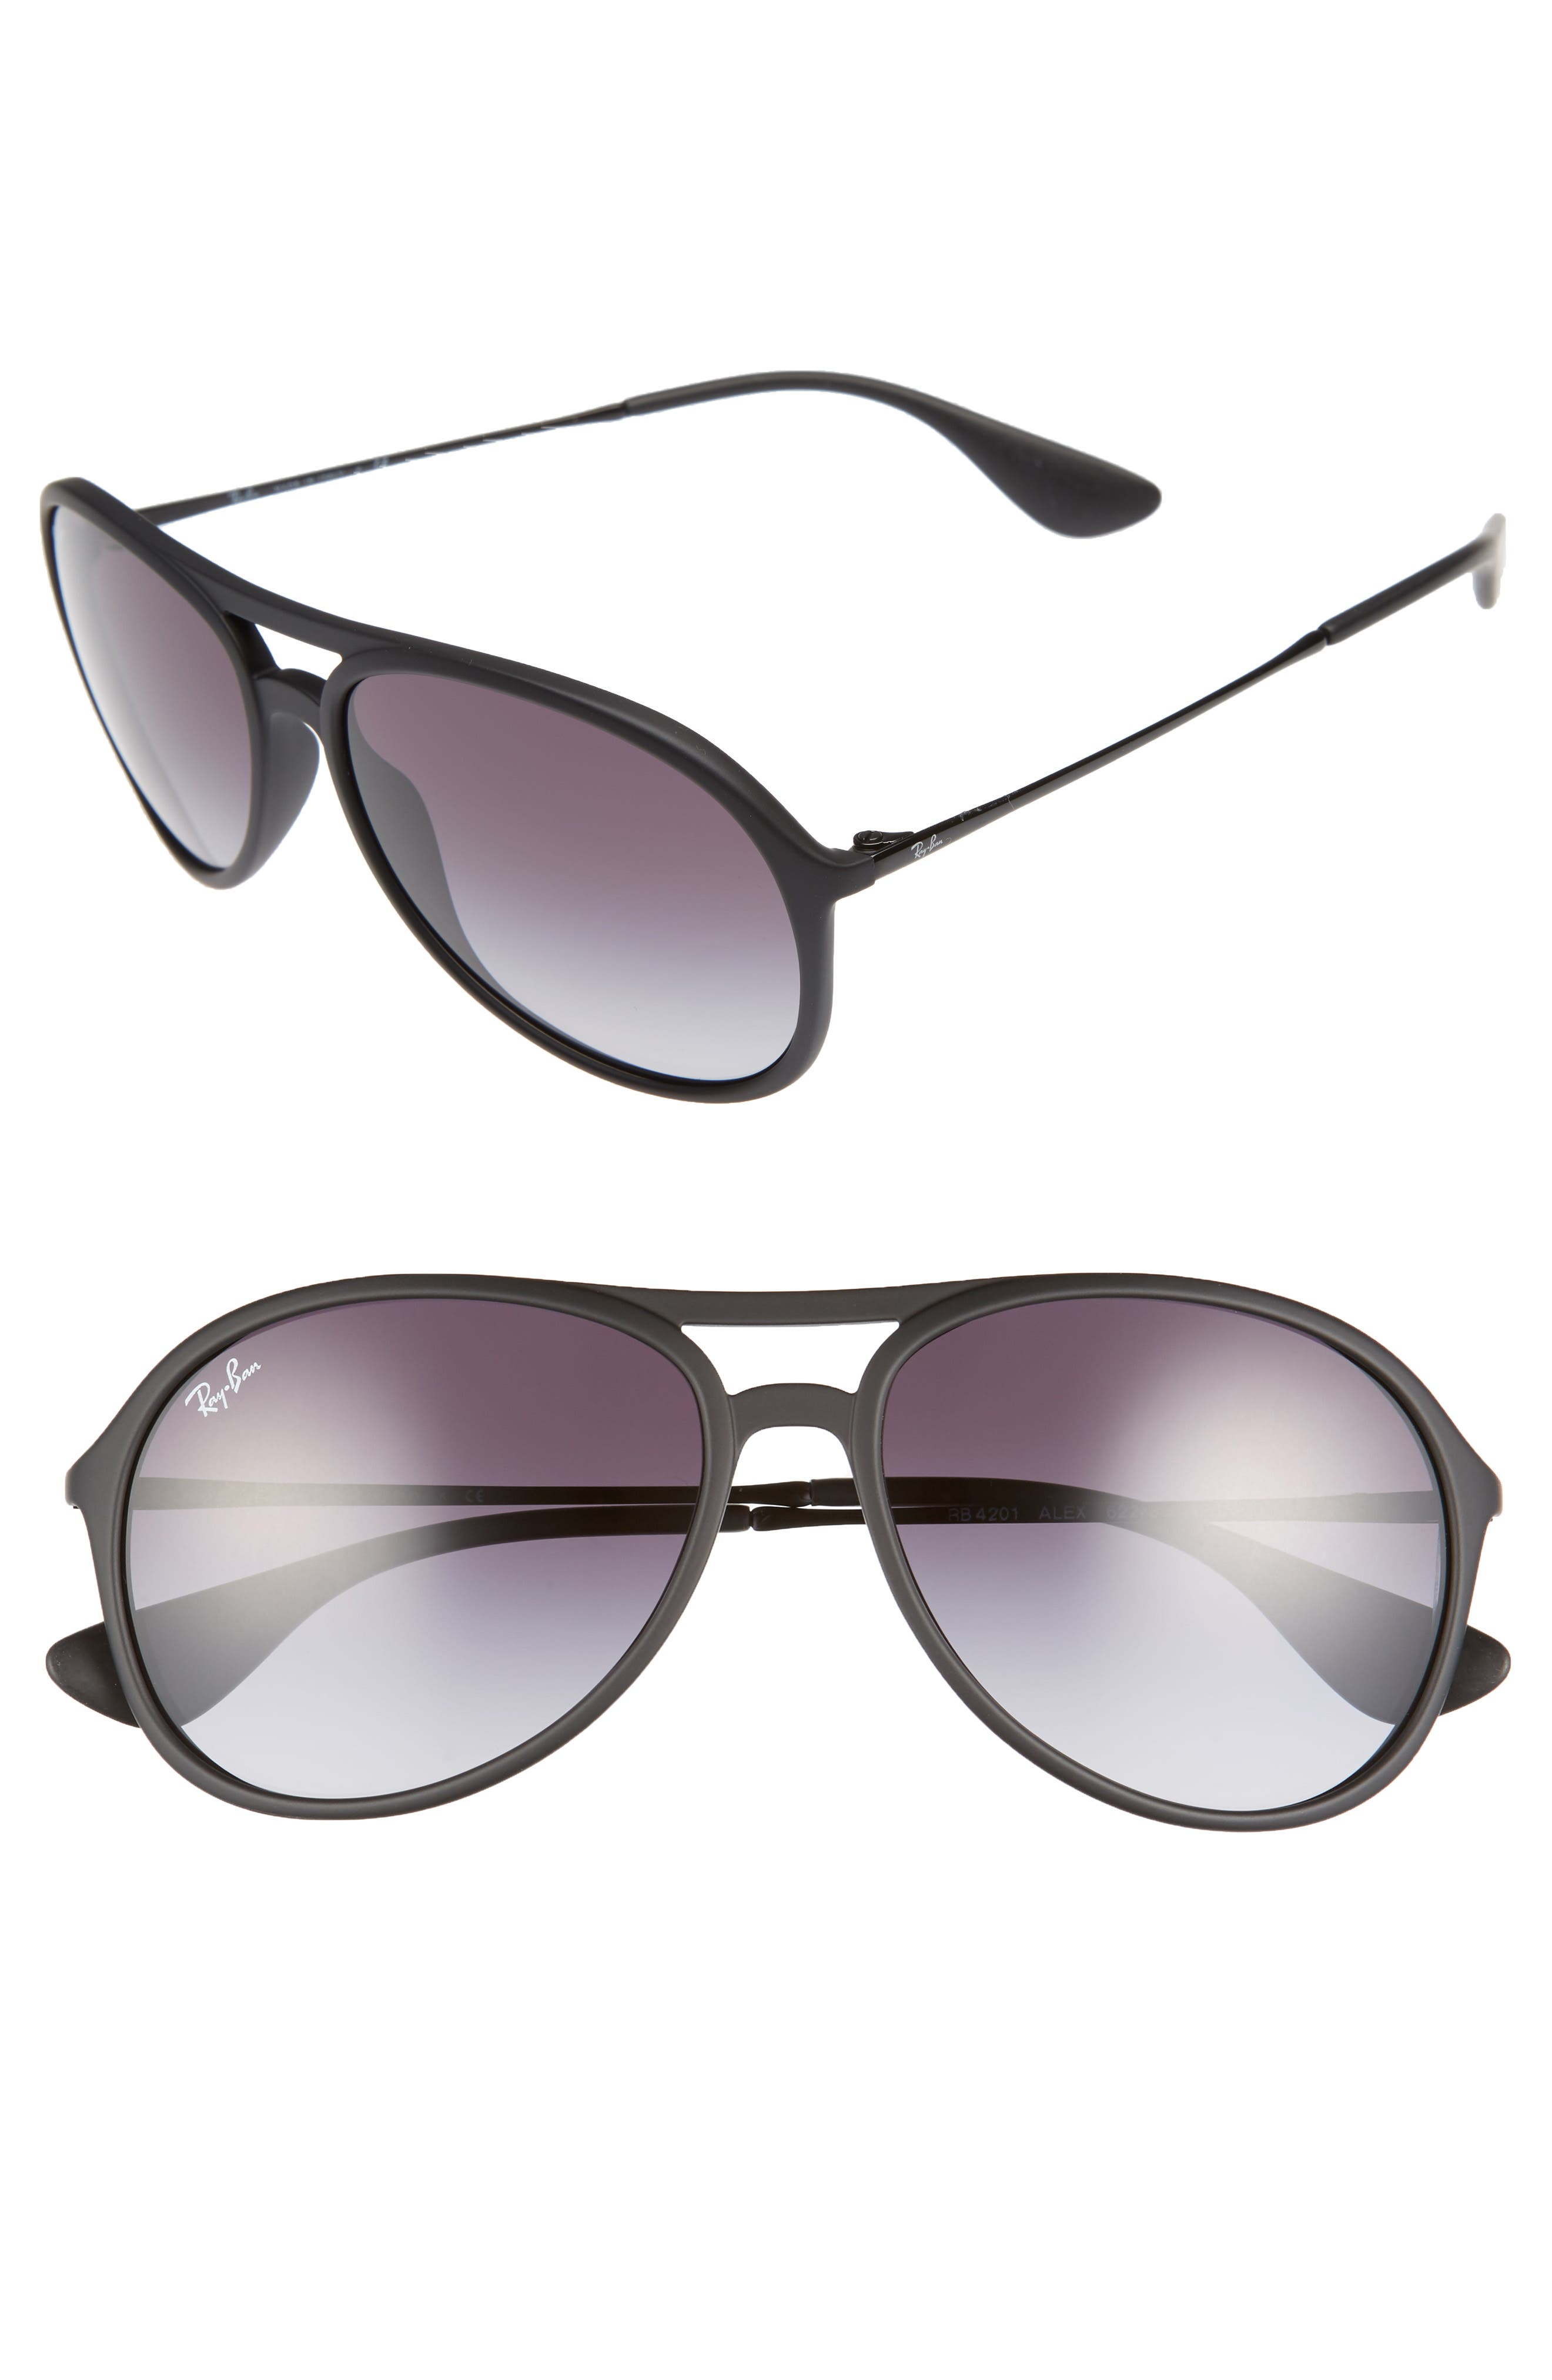 Ray-Ban Youngster 5m Aviator Sunglasses - Matte Black